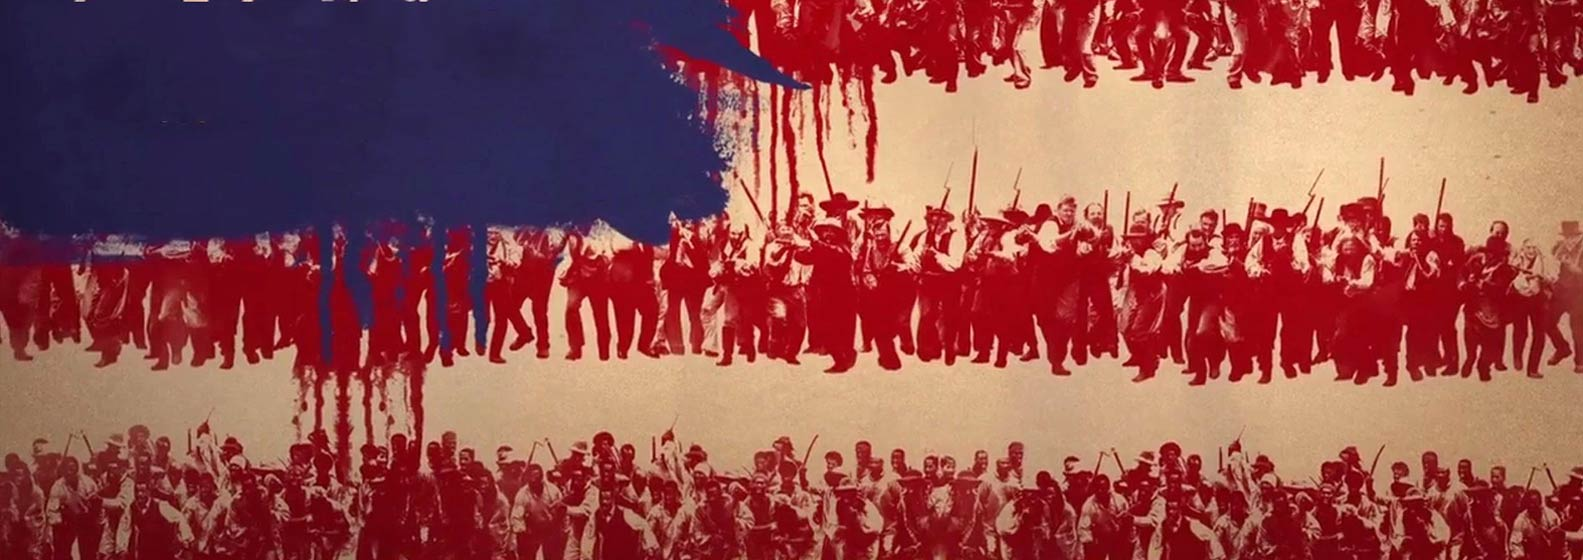 The Birth of a Nation - Header Image